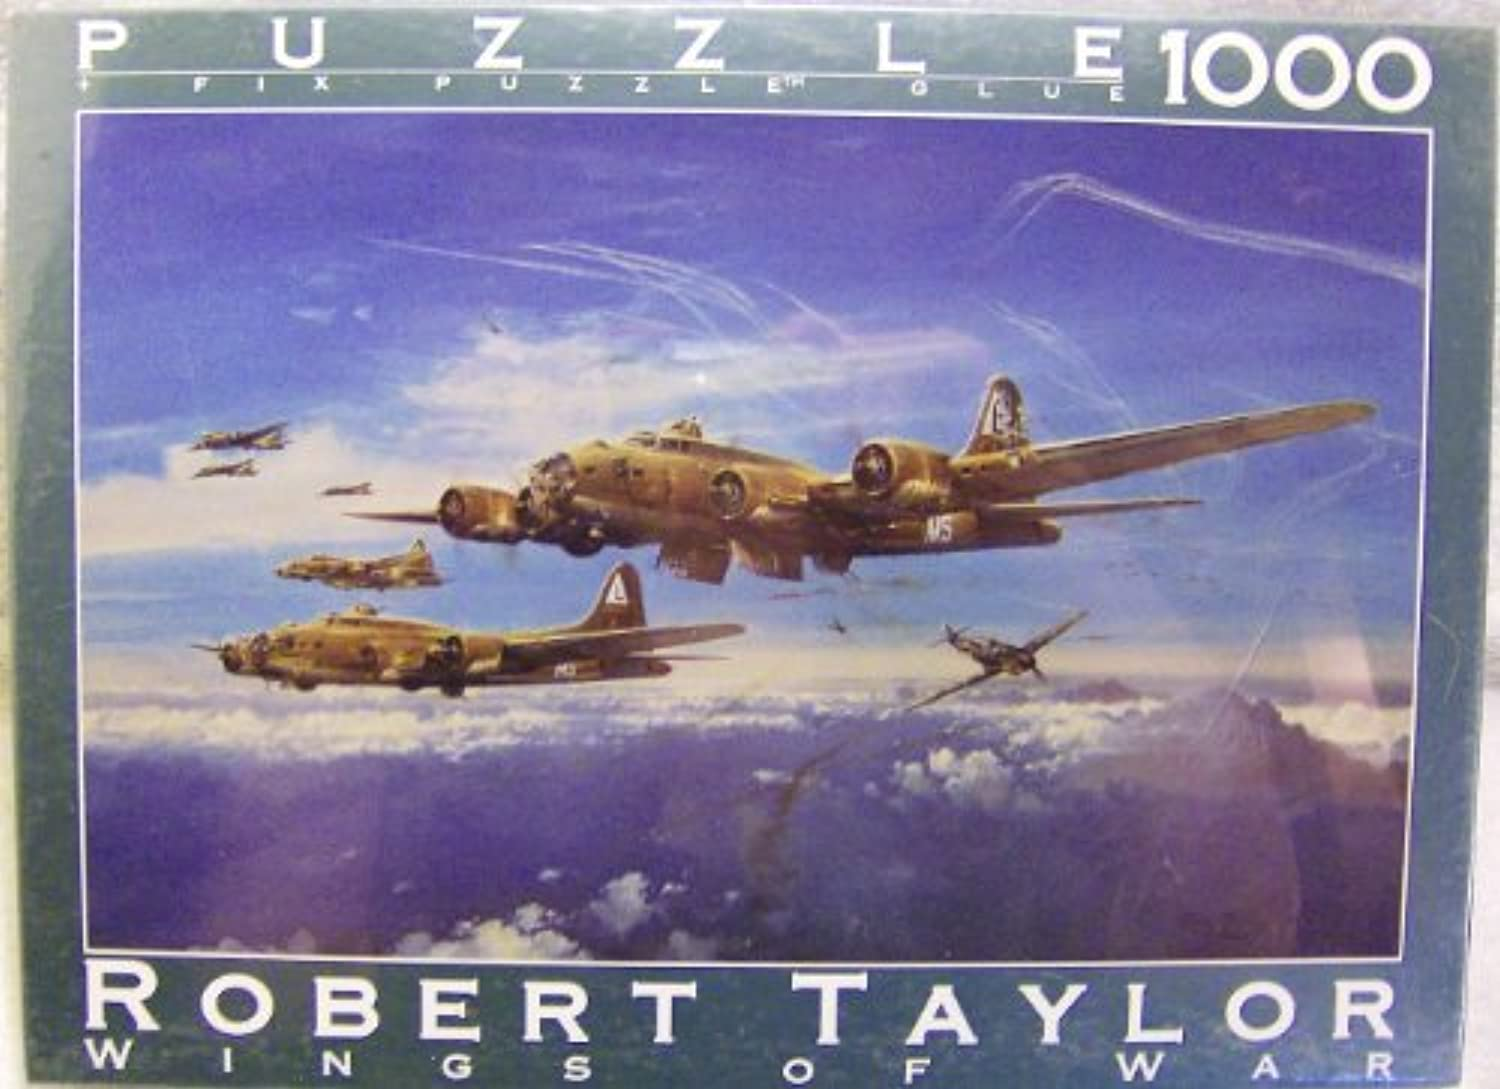 Fink & Company Wings of War Series Robert Taylor Return From Schweinfurt 1000 Piece Puzzle by Fink & Company Wings of War